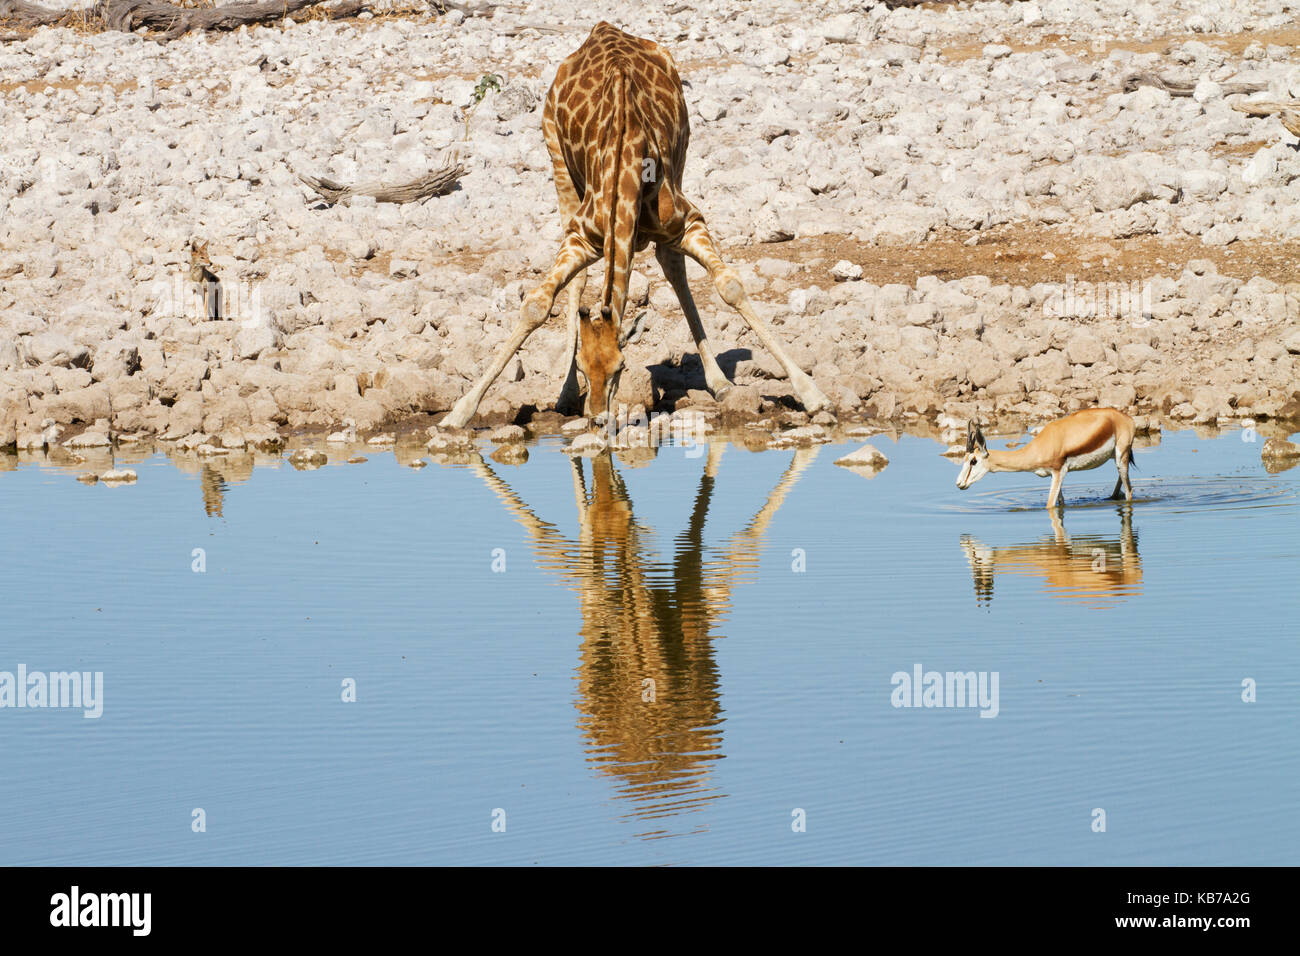 Southern Giraffe (Giraffa camelopardalis giraffa) and Springbok (Antidorcas marsupialis) drinking at waterhole with - Stock Image